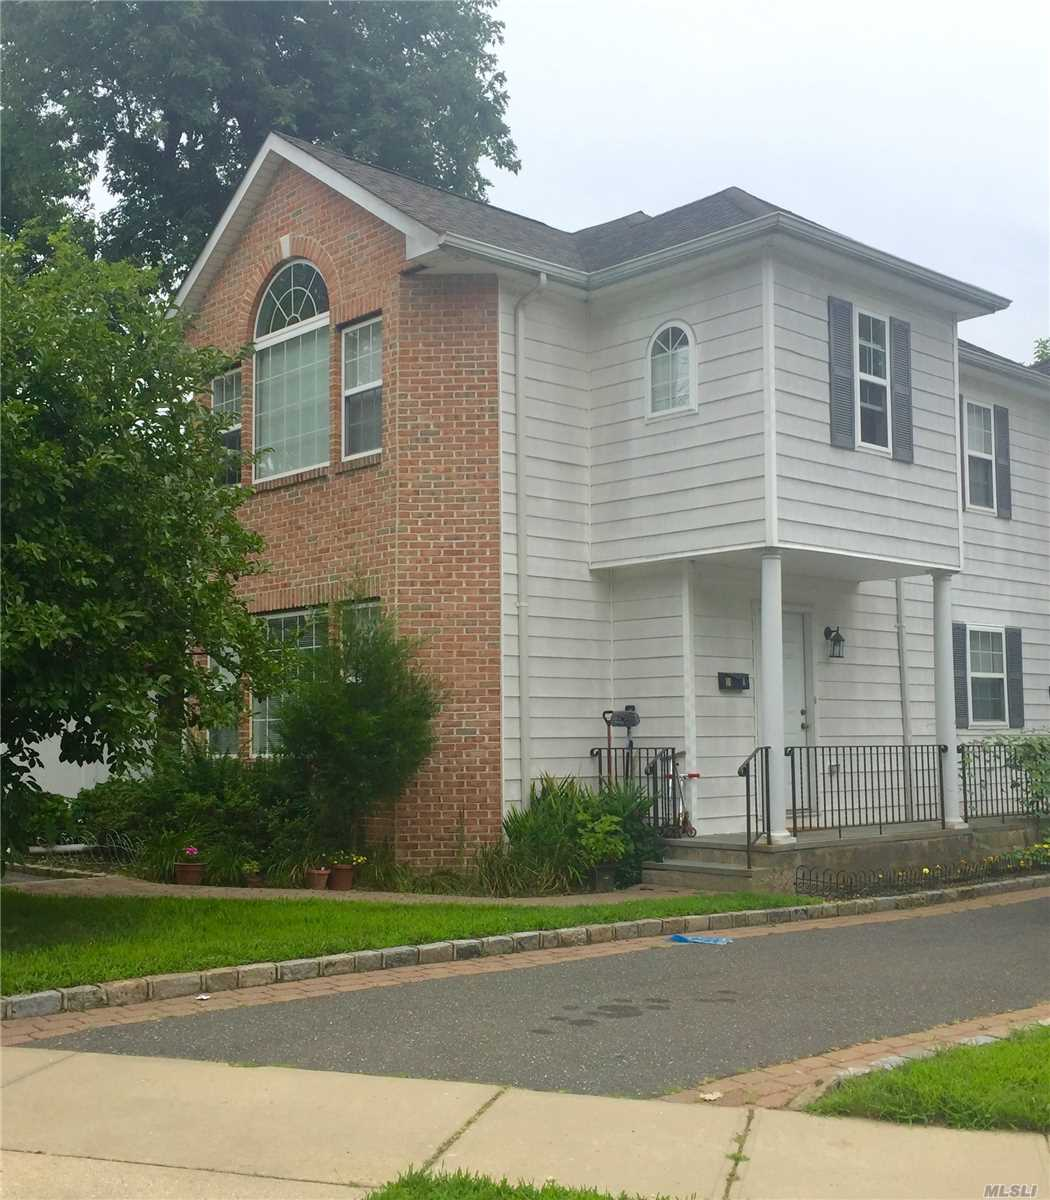 Lux Duplex With Large Eat In Kitchen, Full Dining Area, , Large 3Brs, 2.5 Bath, Full Finished Basement, Close To Park, Marinas, Fenced Side Yard Is Perfect For Bbq Party,  1 Large Or Small 2 Cars Parking, 2 Years Lease Minimum, Oct 1 Occupancy.